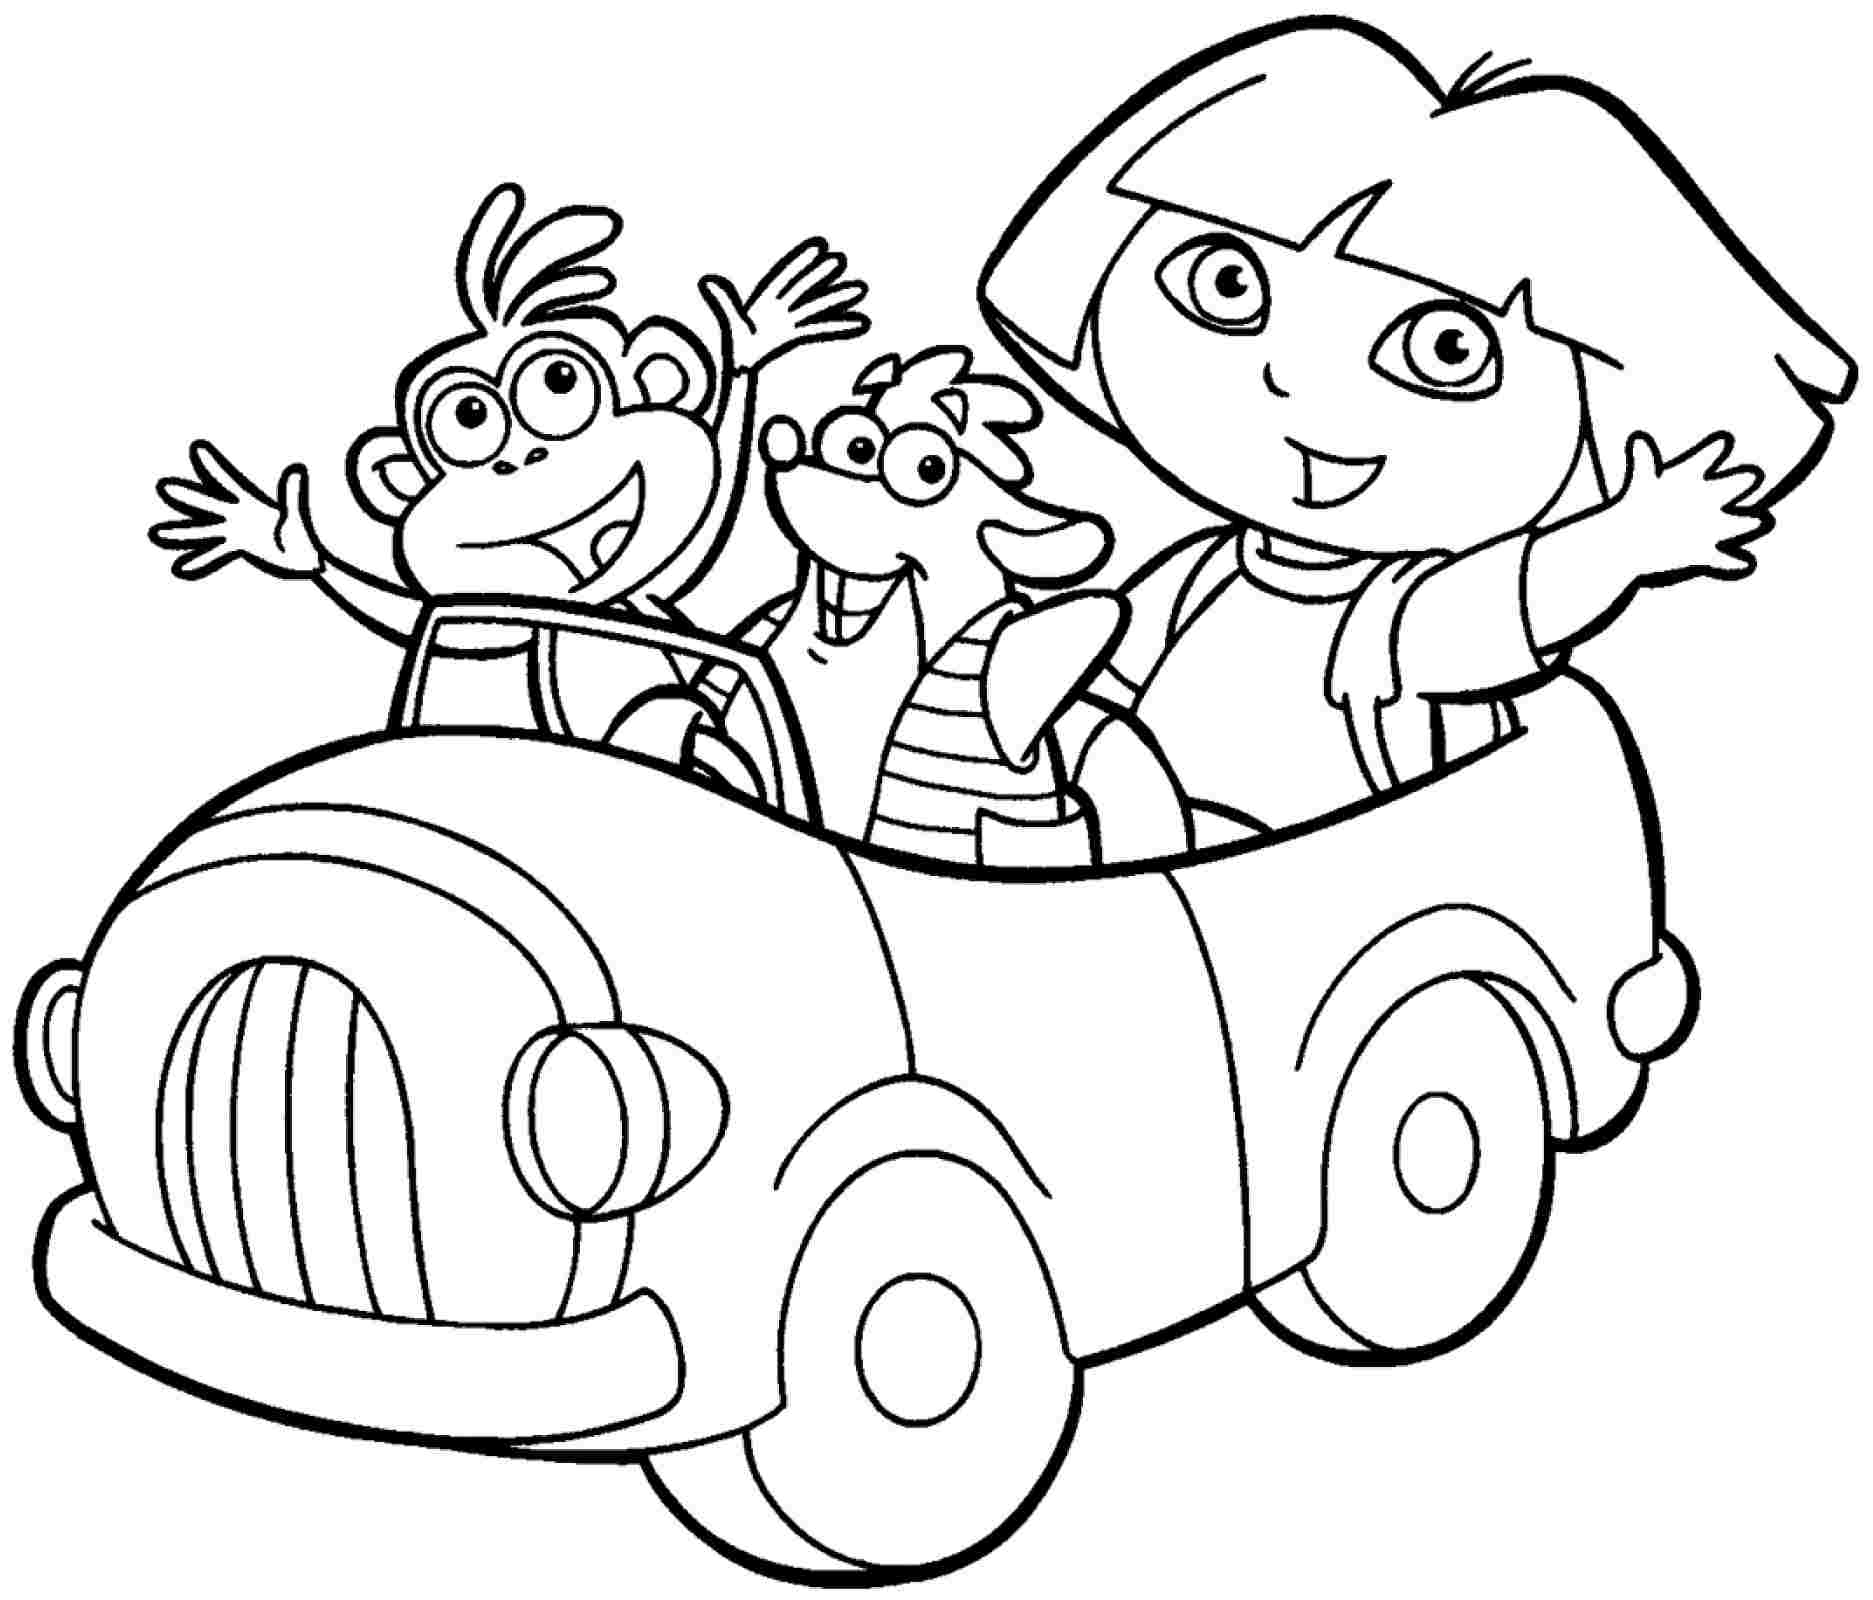 9 Pics of Dora And Friends Mermaid Coloring Pages - Dora and ...